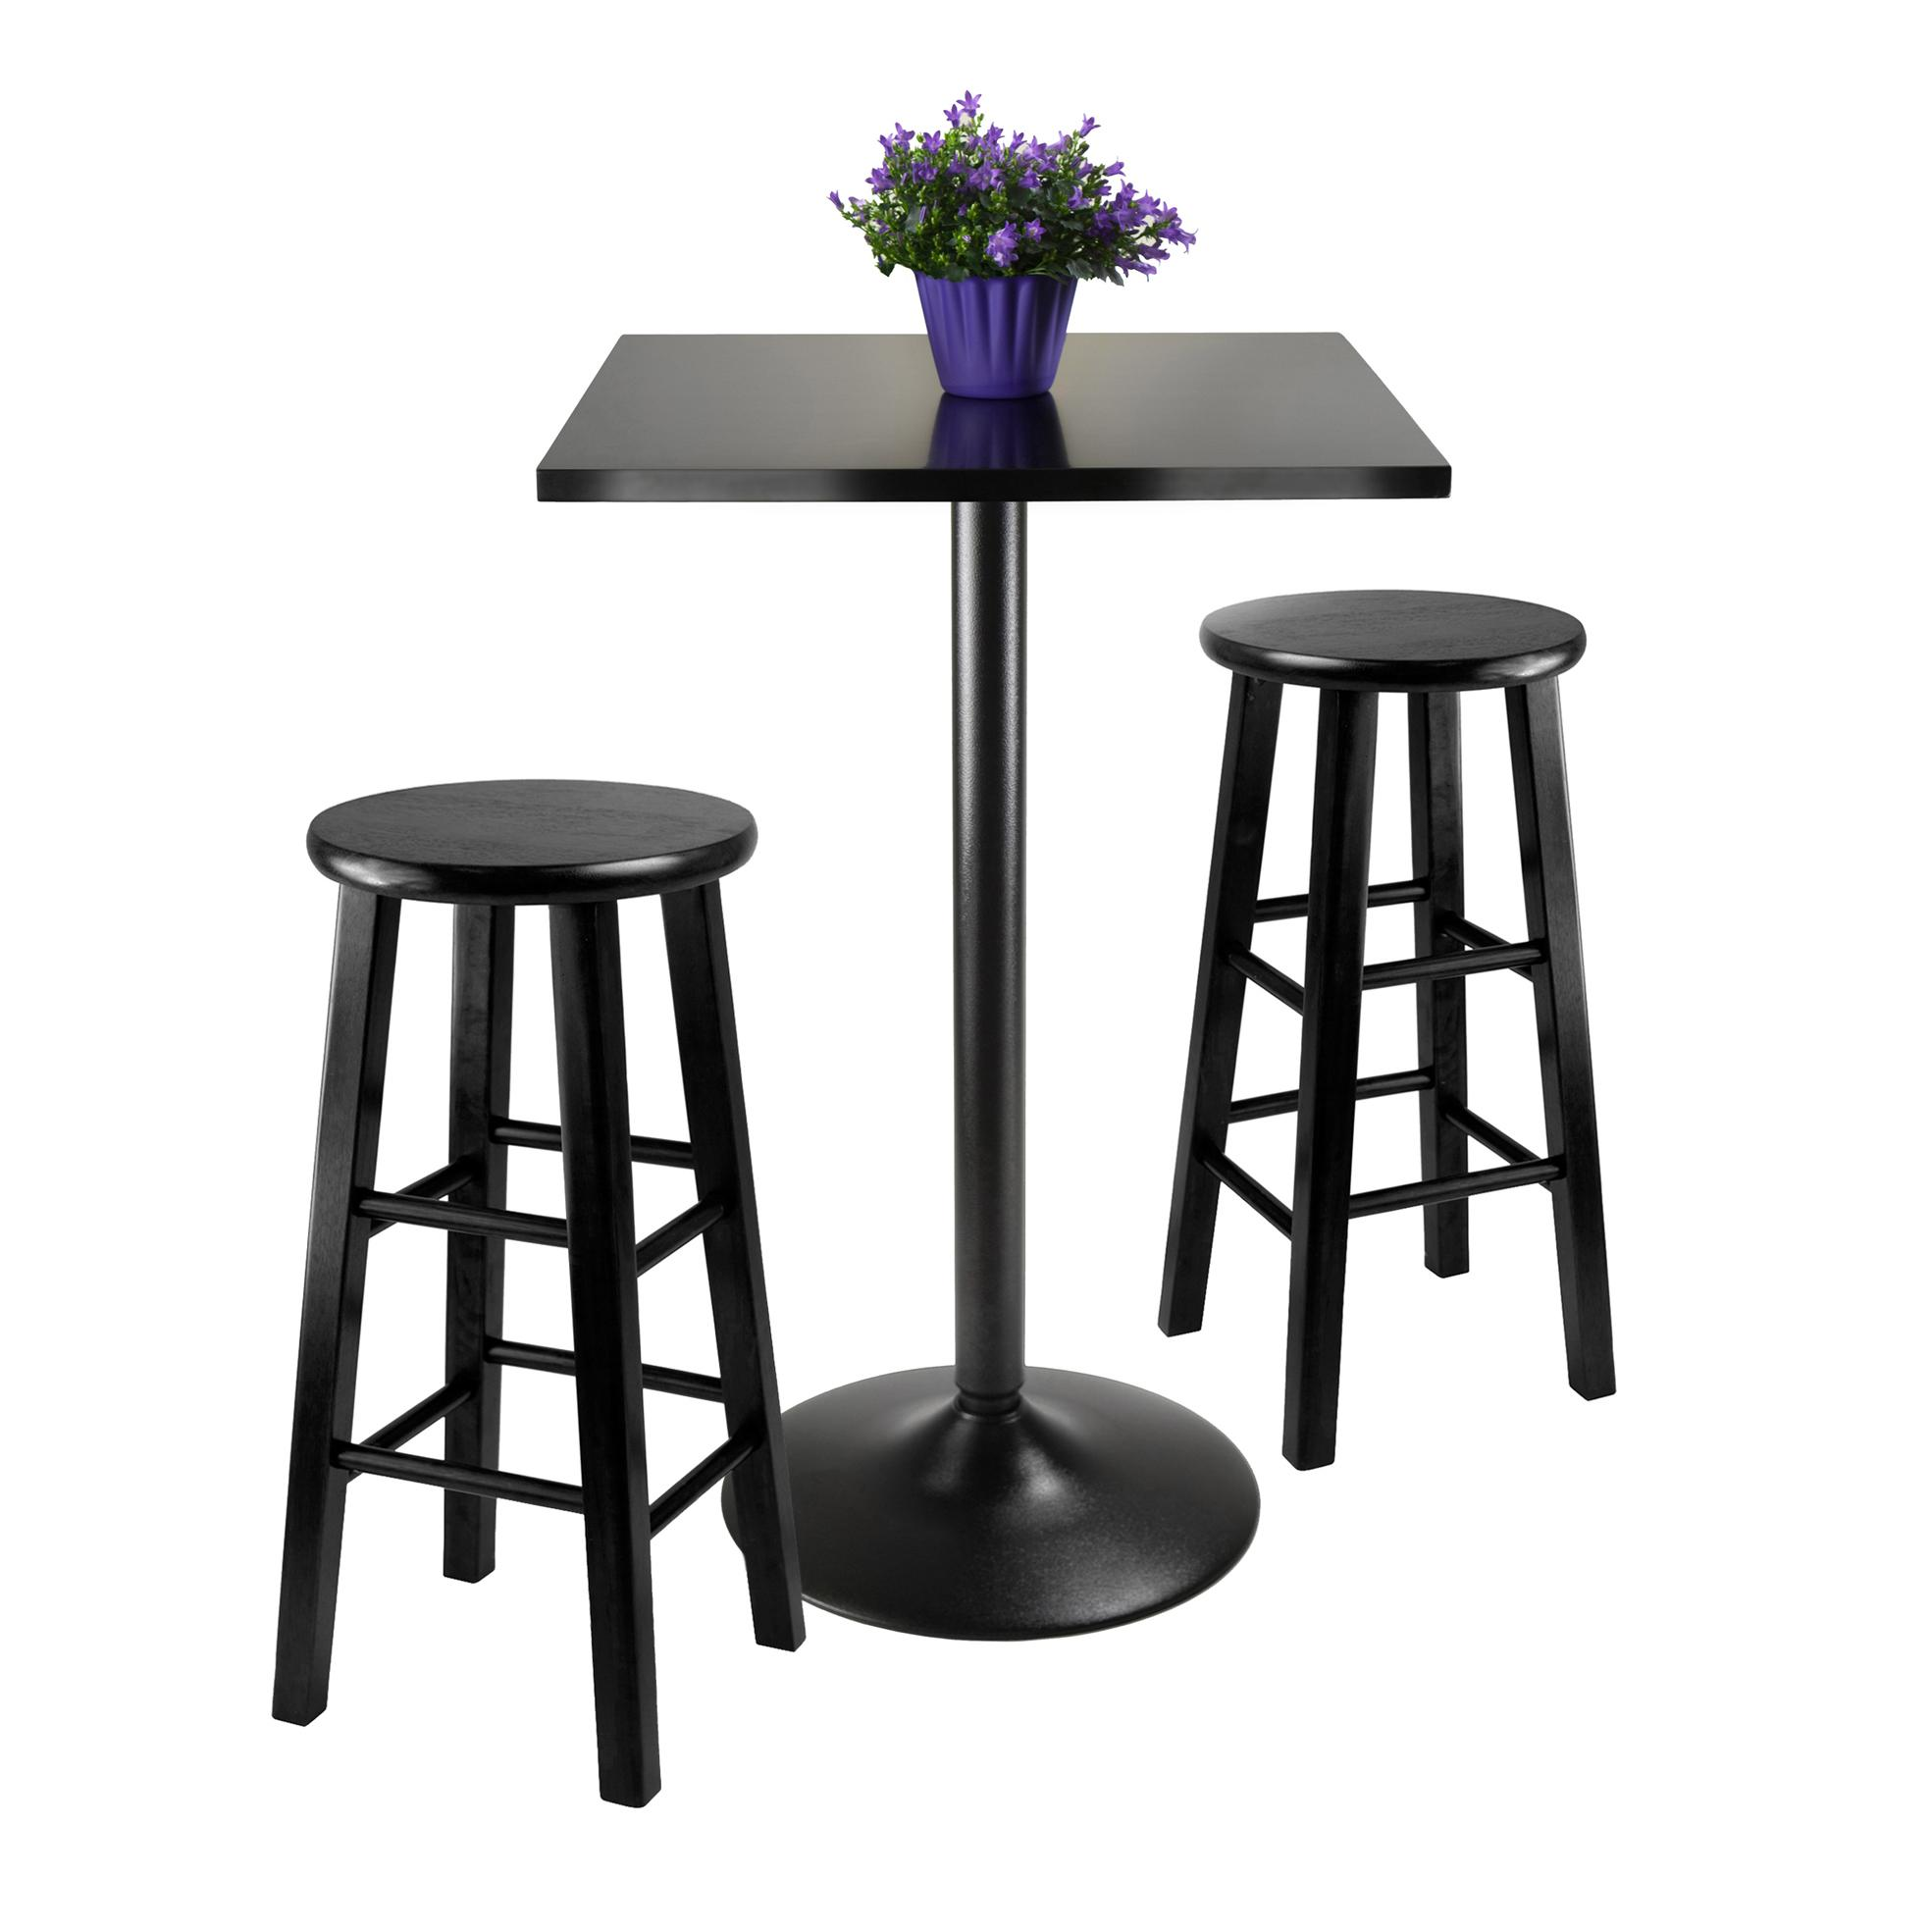 3 Piece Pub Table Set Bar Stool Counter Height Bistro Kitchen Dining Chair Round